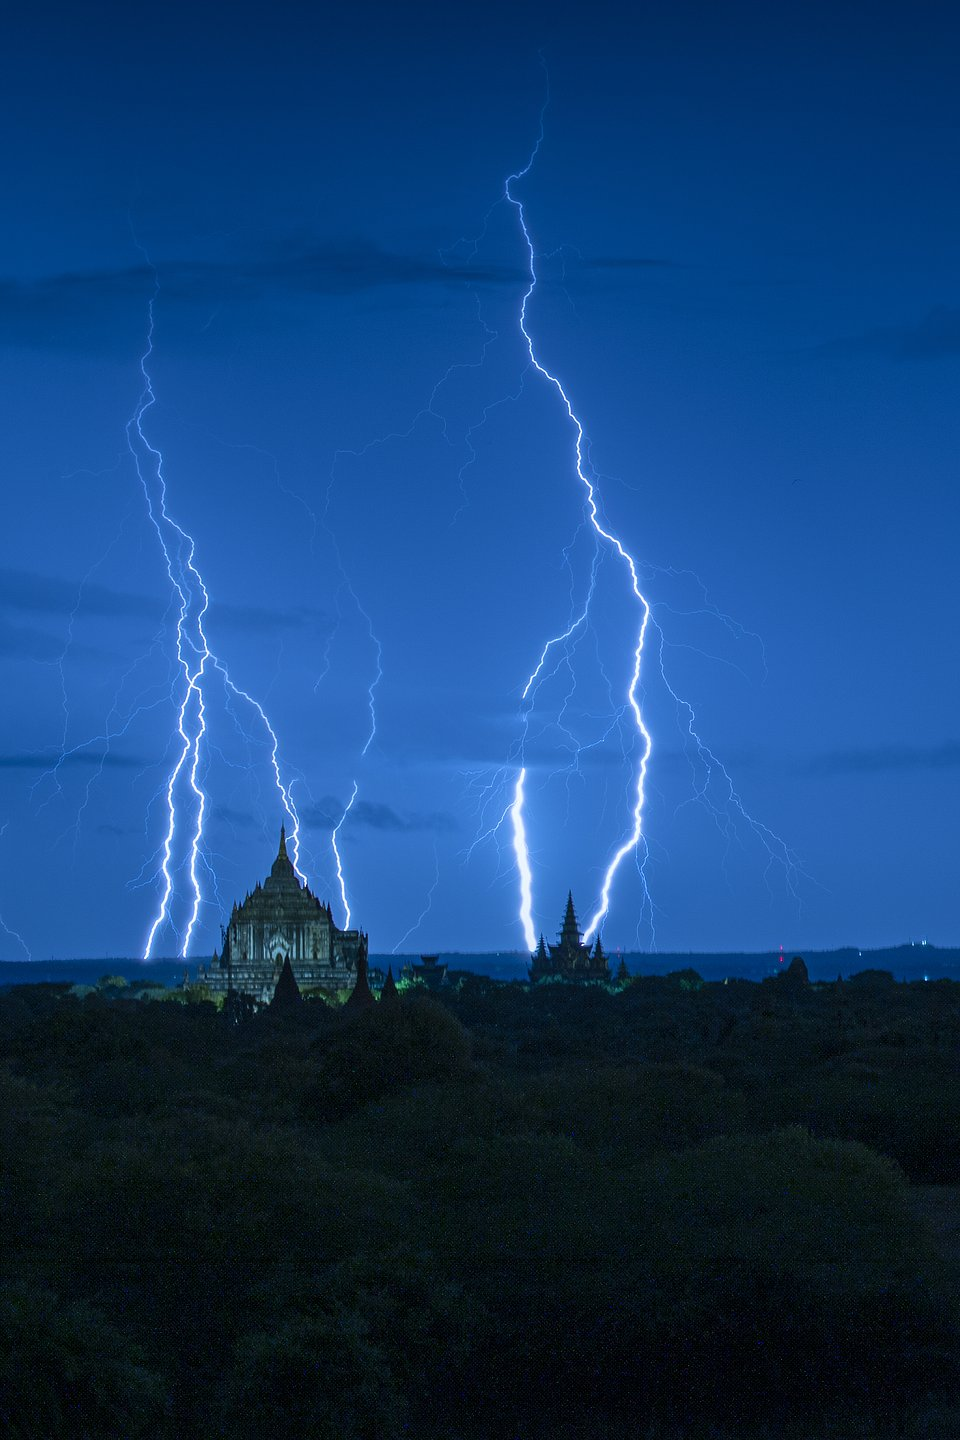 This electric shot was captured in Bagan, Myanmar during its rainy season in August. (Naing Tun Win/Agora)